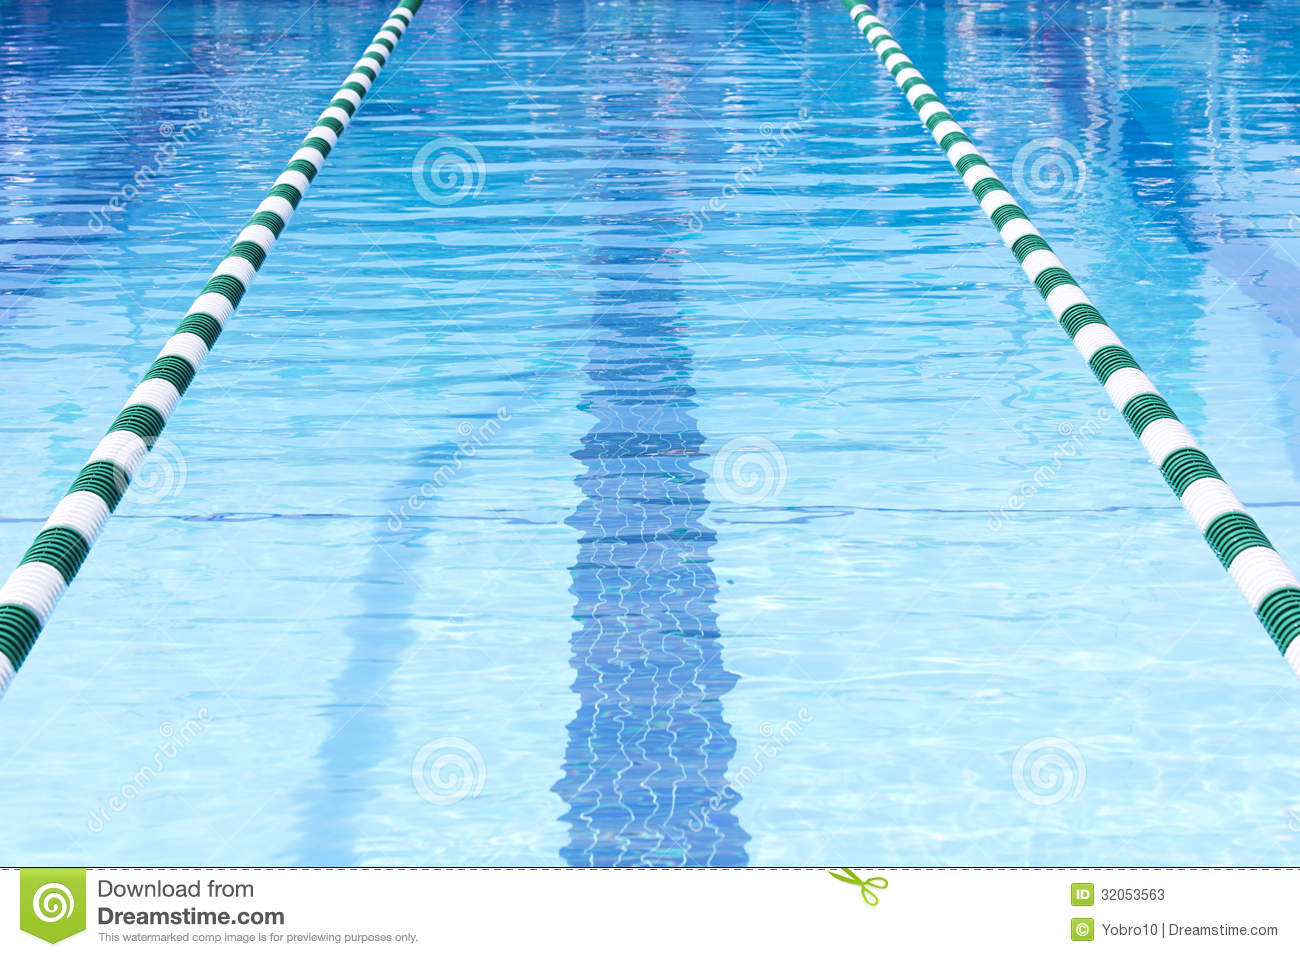 royalty free stock photo download swimming pool swim lanes - Olympic Swimming Pool Lanes